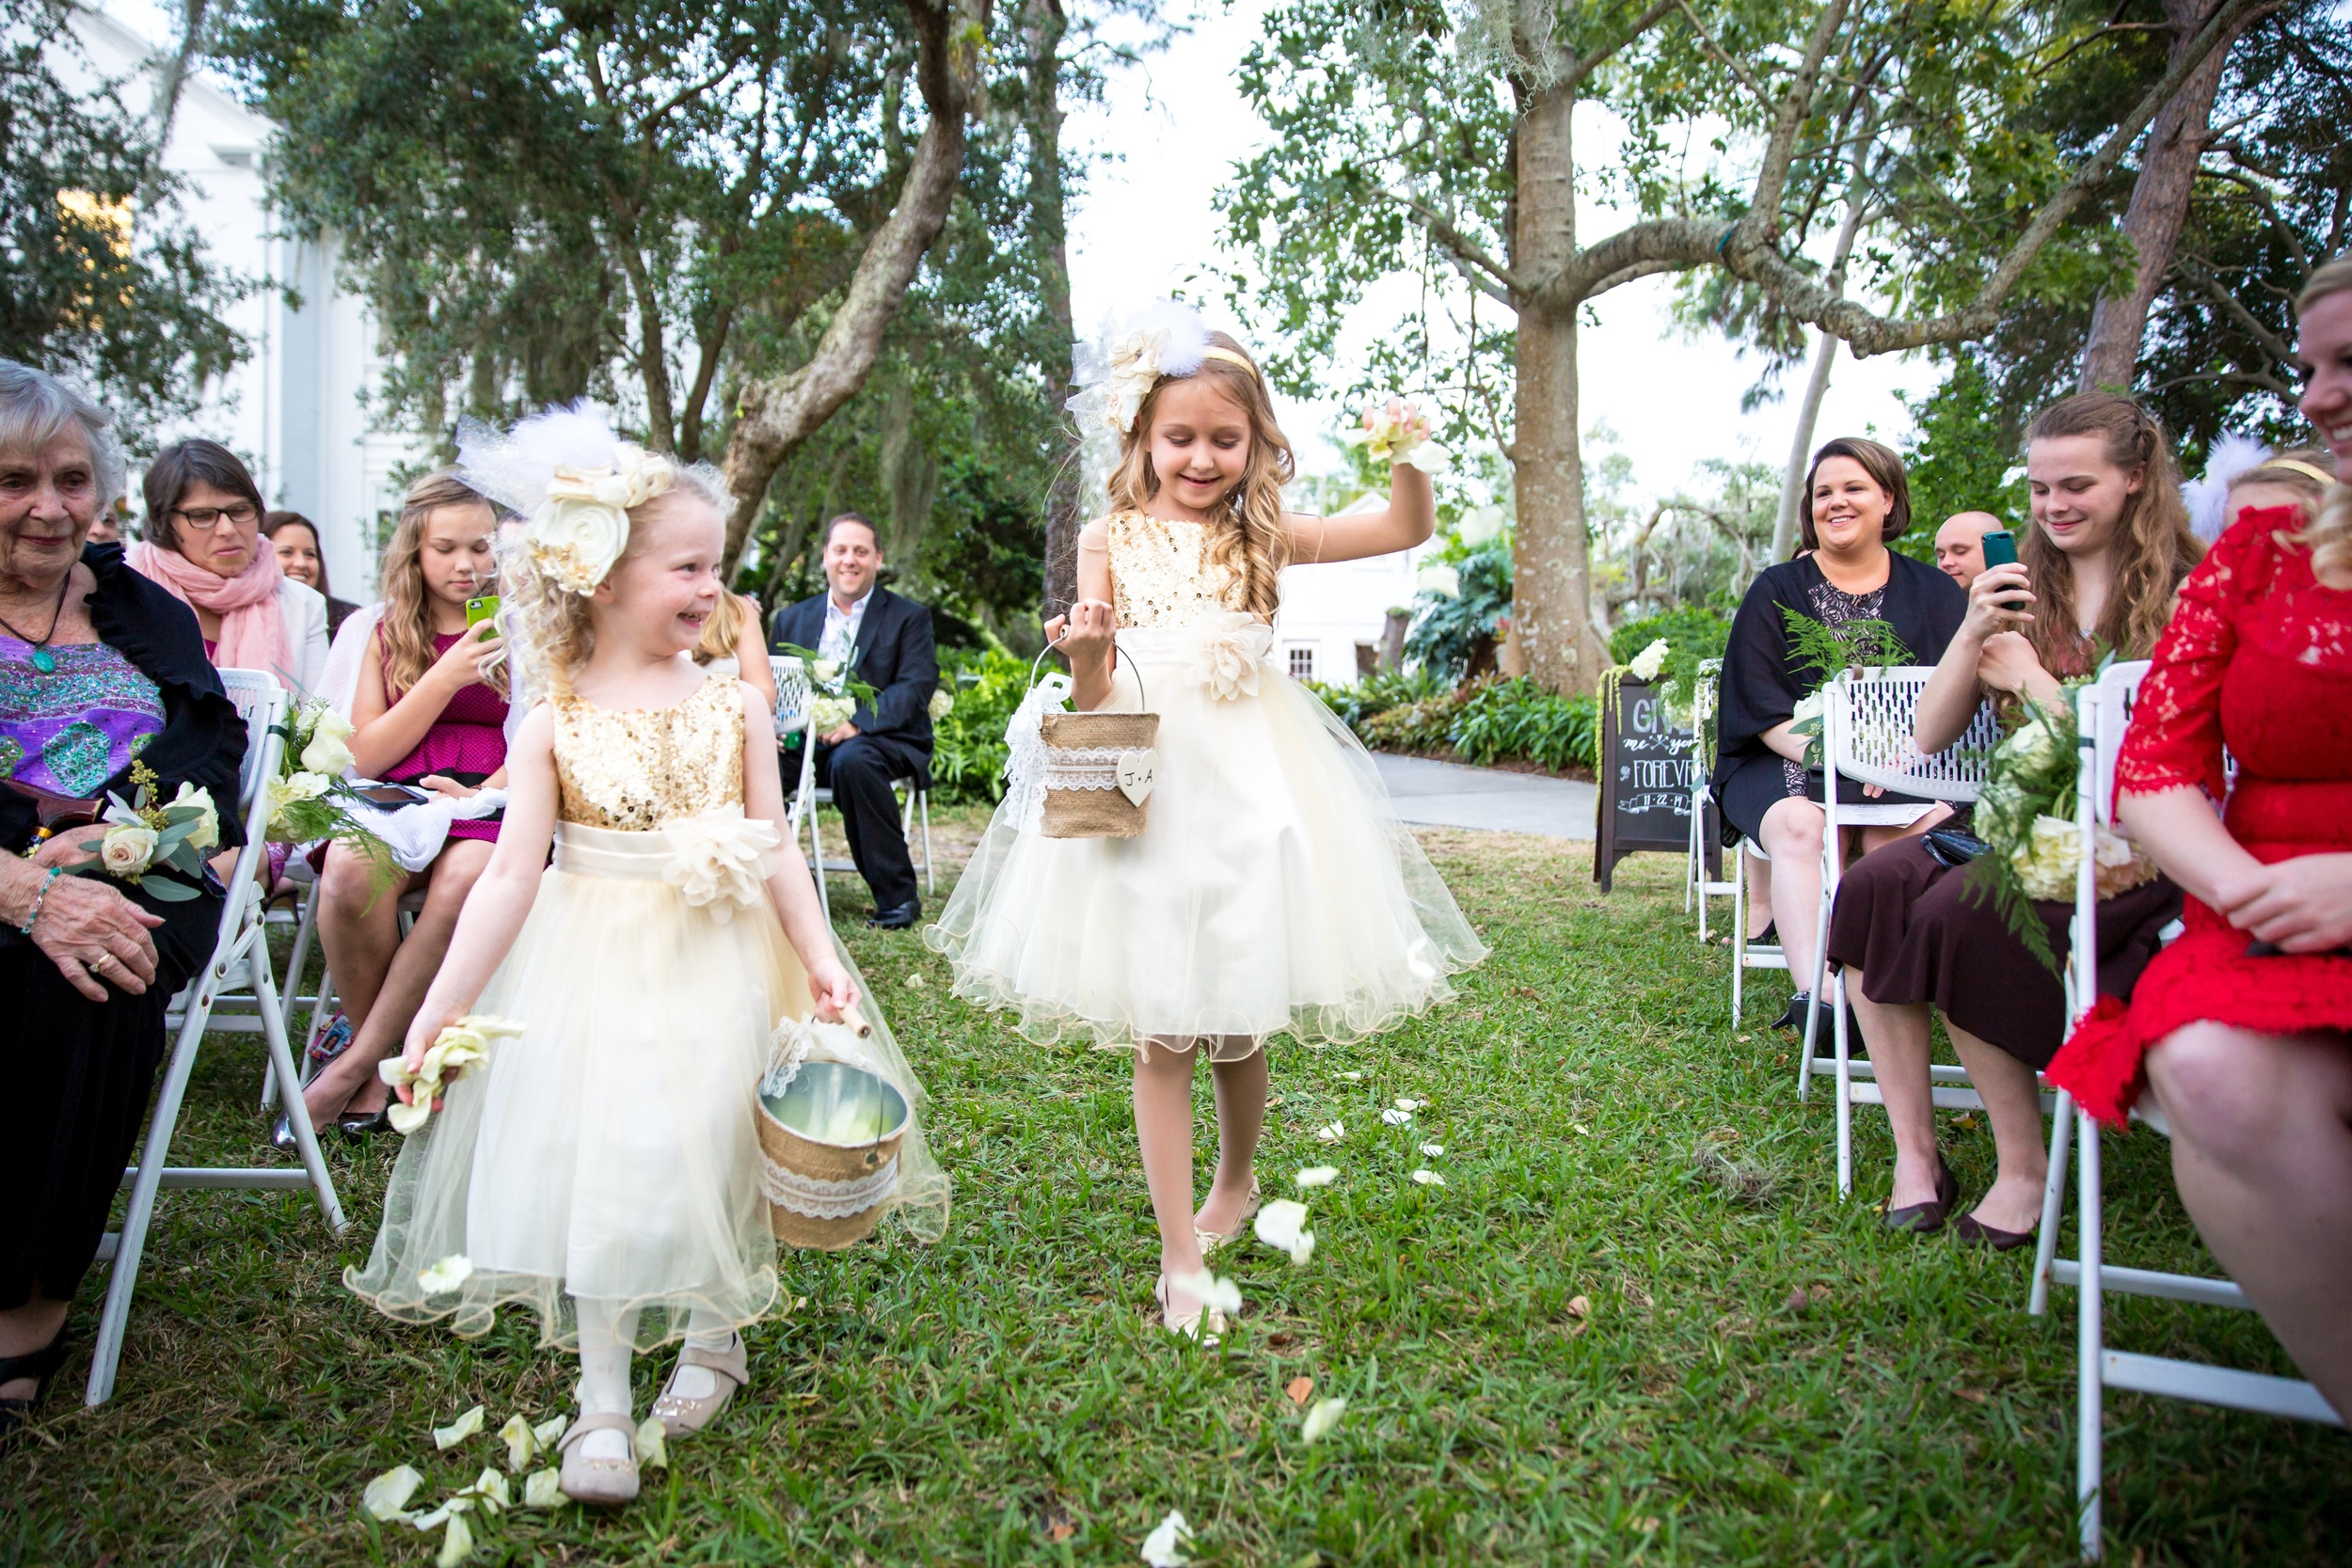 Flowergirls wore gold sequin and tulle dresses and carried burlap-wrapped buckets filled with petals